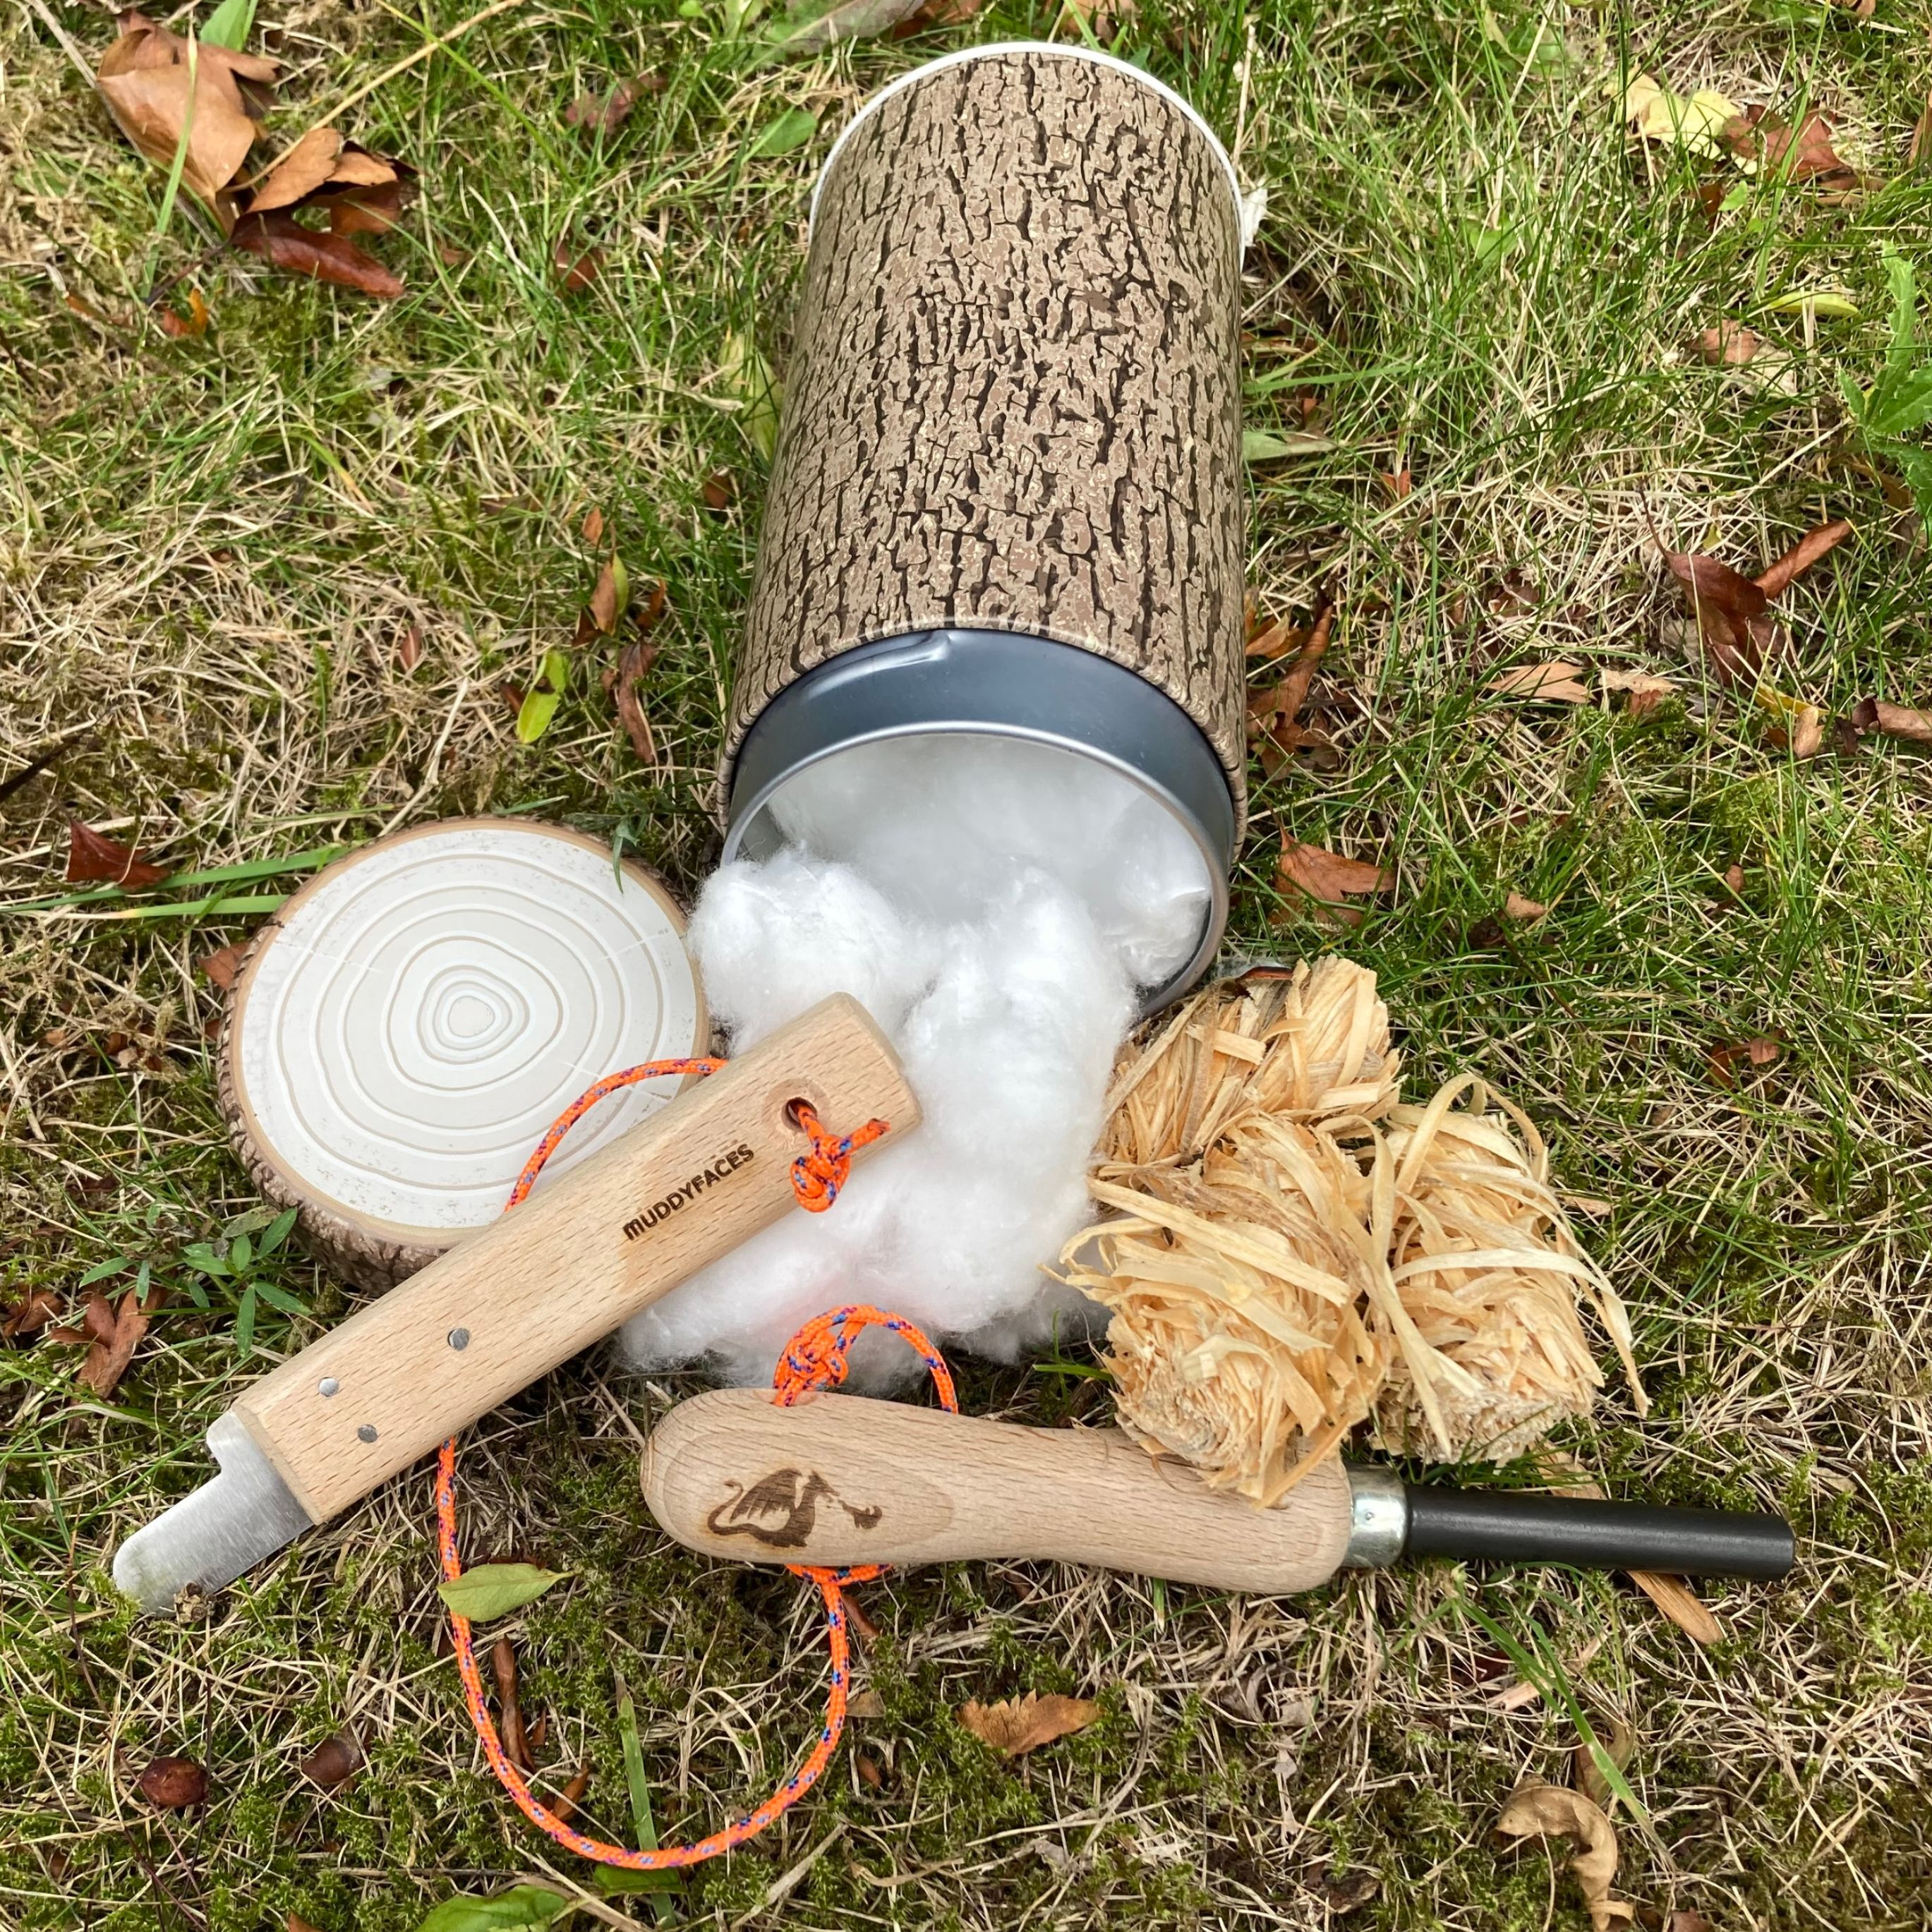 a log patterned tin full of cotton wool balls, with 3 wood strip ball firelighters and a dragons sneeze firelighter, lying on grass